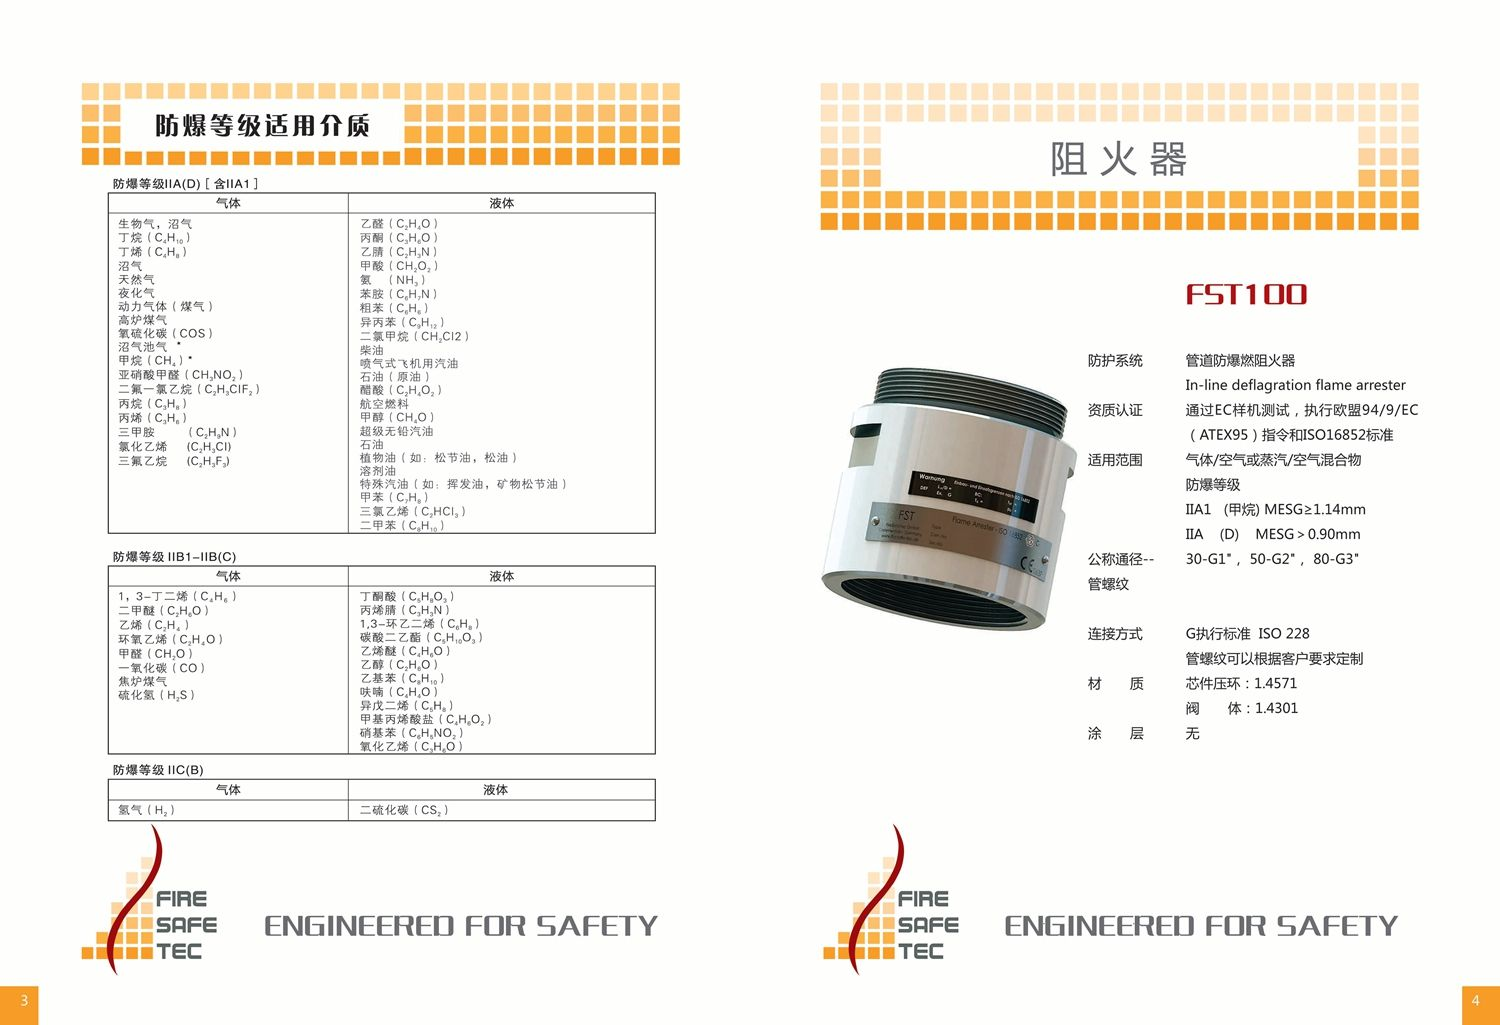 Fire-Safe-Tec GmbH Brouchure in Chinese by SJD Trading Co., Ltd. | susan yao | Pulse | LinkedIn